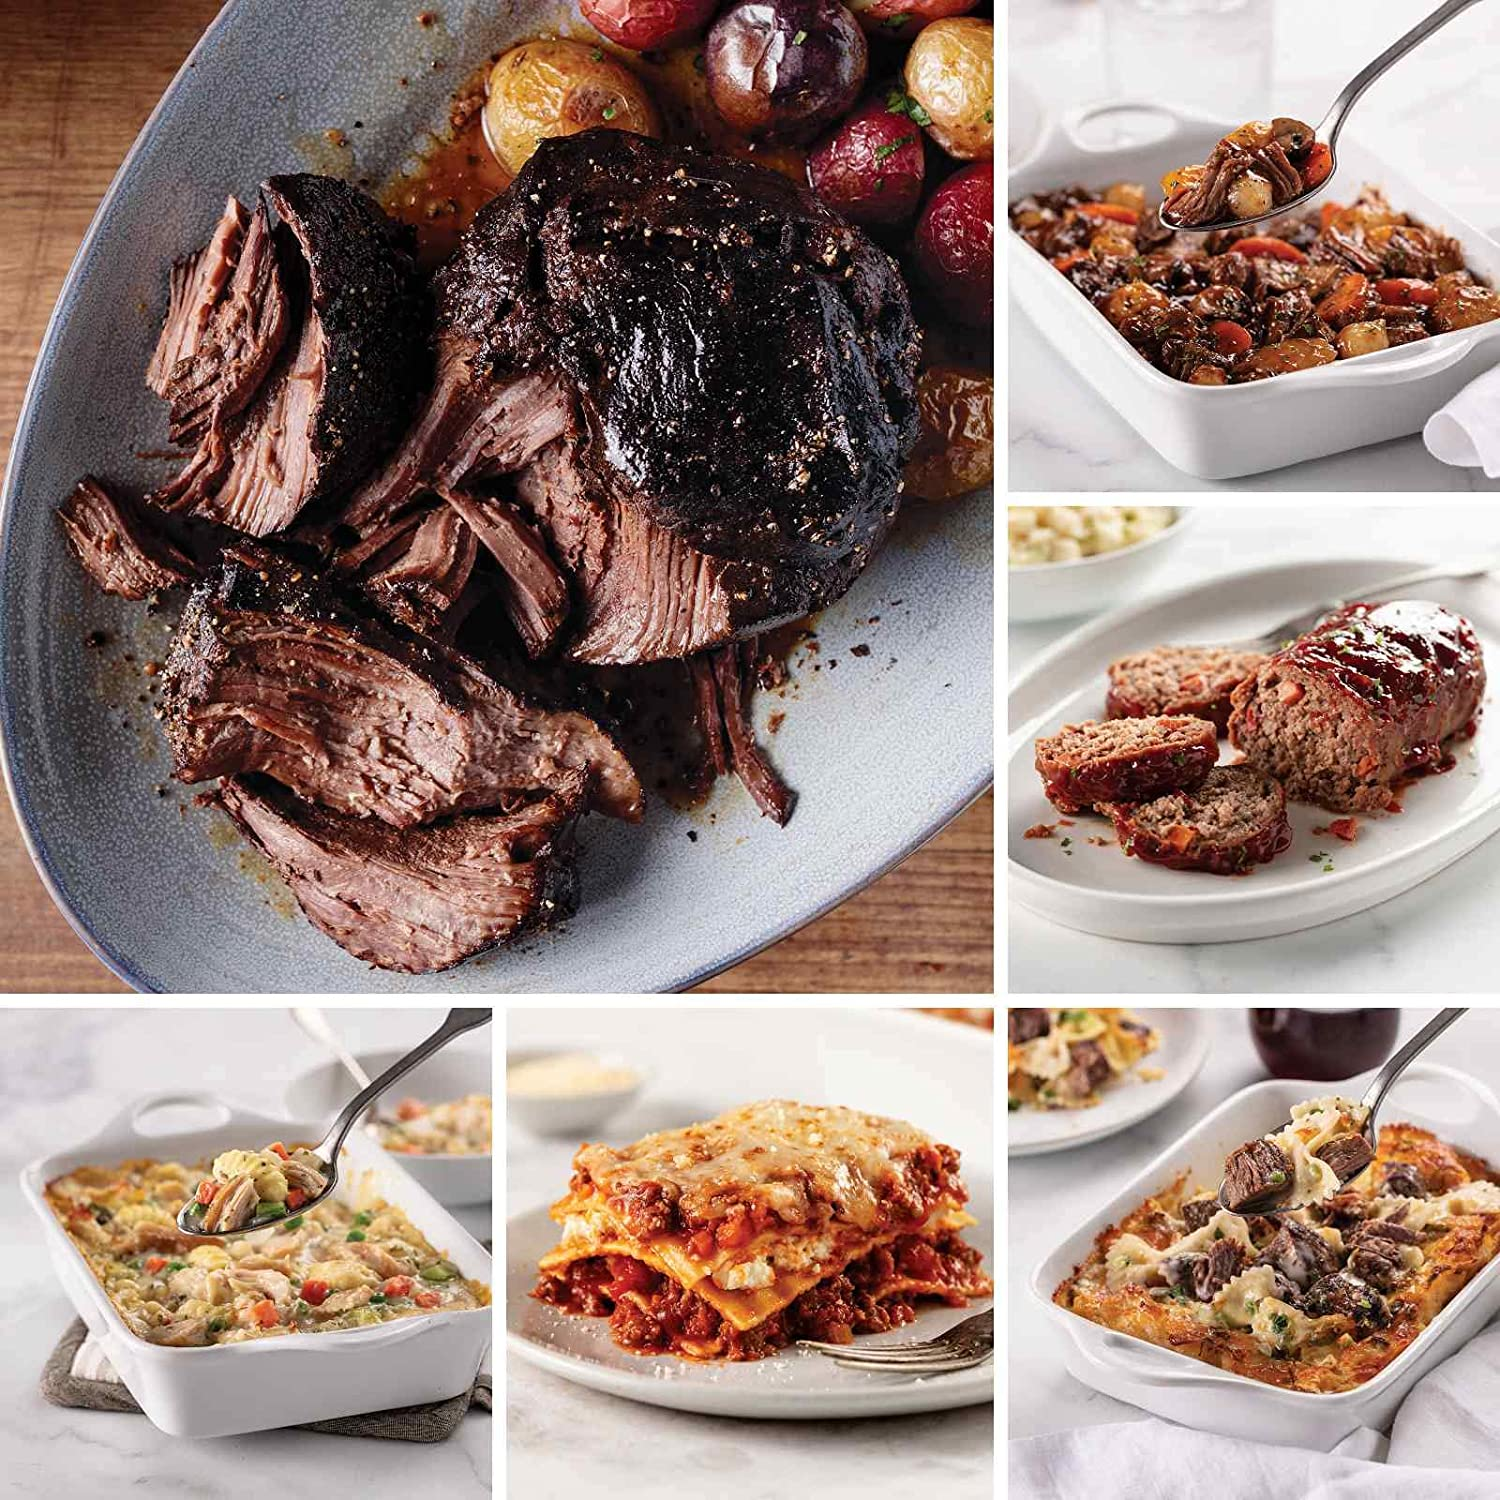 Ultimate Freezer-to-Oven Meal Assortment from Omaha Steaks (Fully Cooked Pot Roast, Baked Chicken & Dumplings, Meat Lover's Lasagna, Short Rib Mac & Cheese, Homestyle Meatloaf, and more)